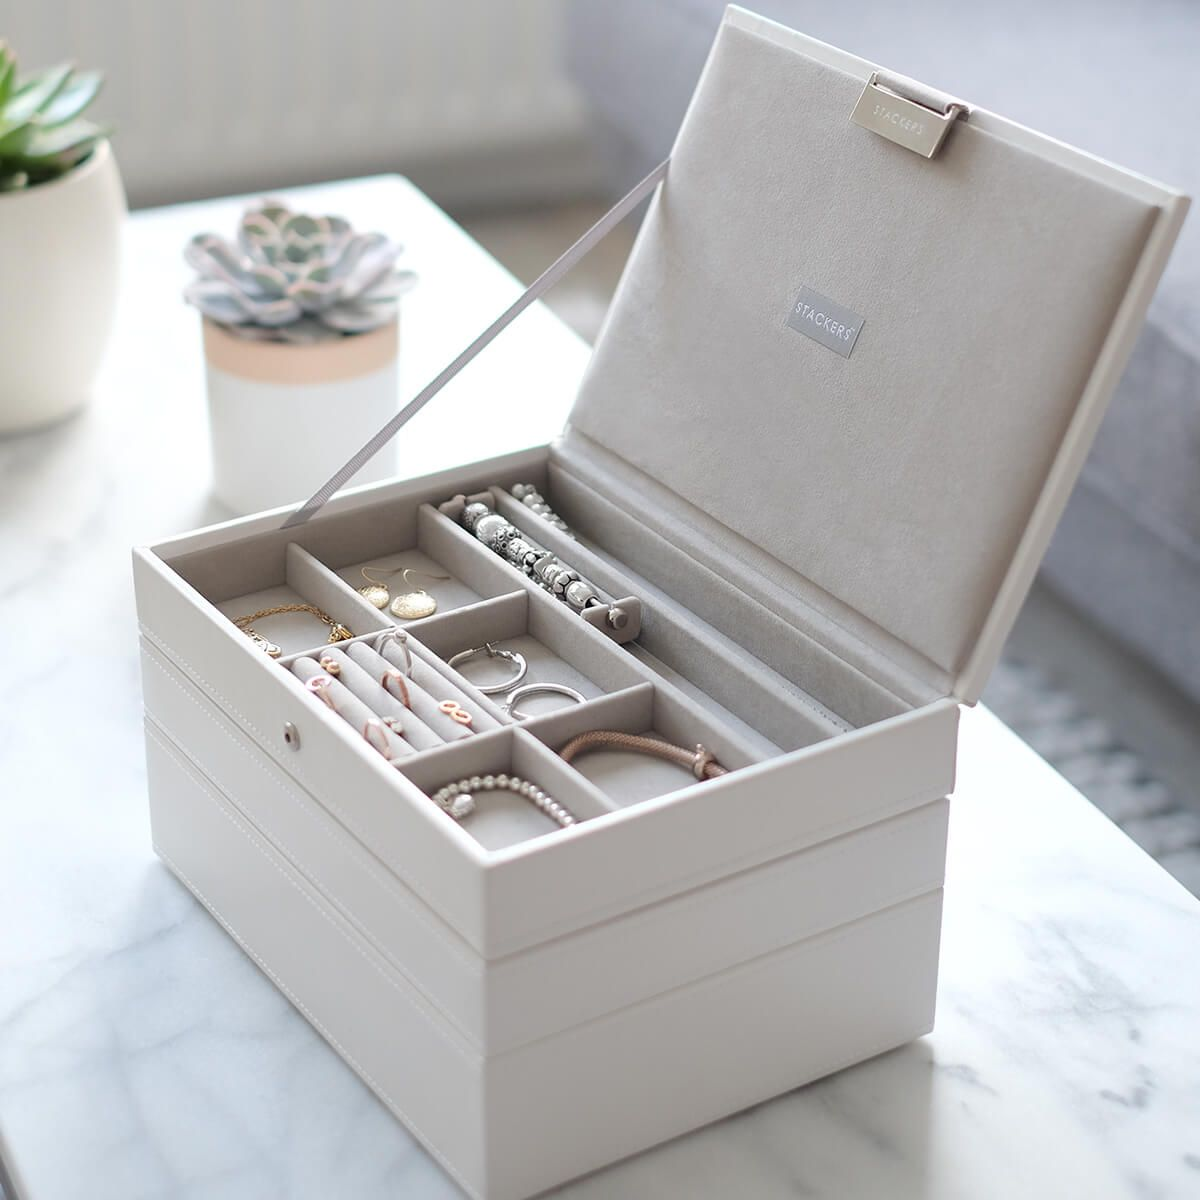 Stackers Jewellery Boxes Create Your Own Jewellery Box Jewelry Organizer Box Stackers Jewellery Jewelry Storage Diy